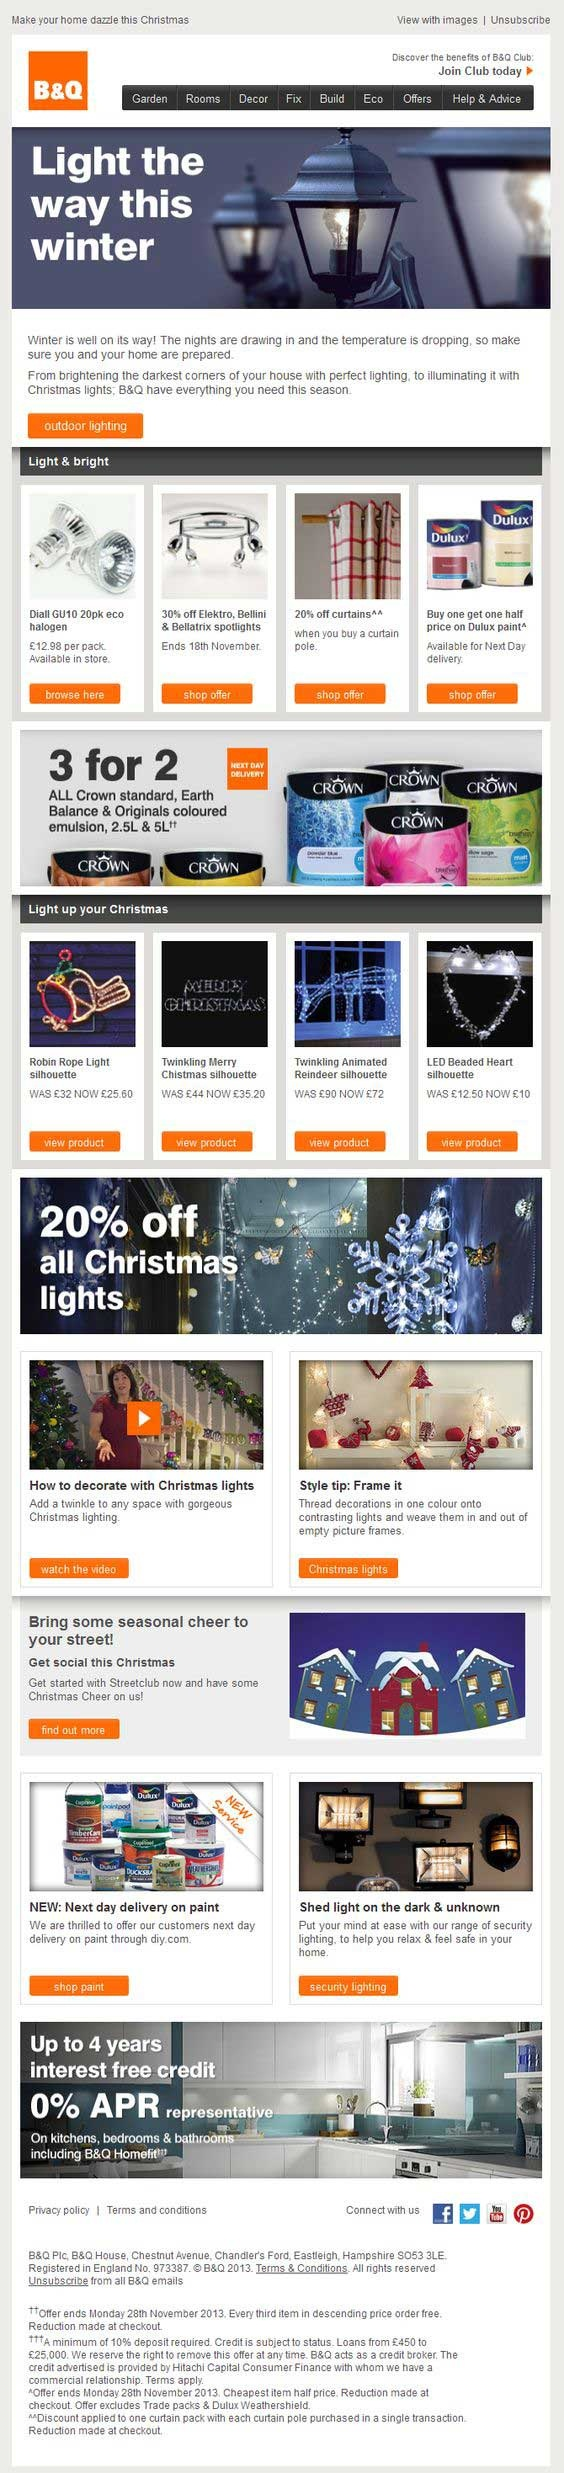 B&Q static email example